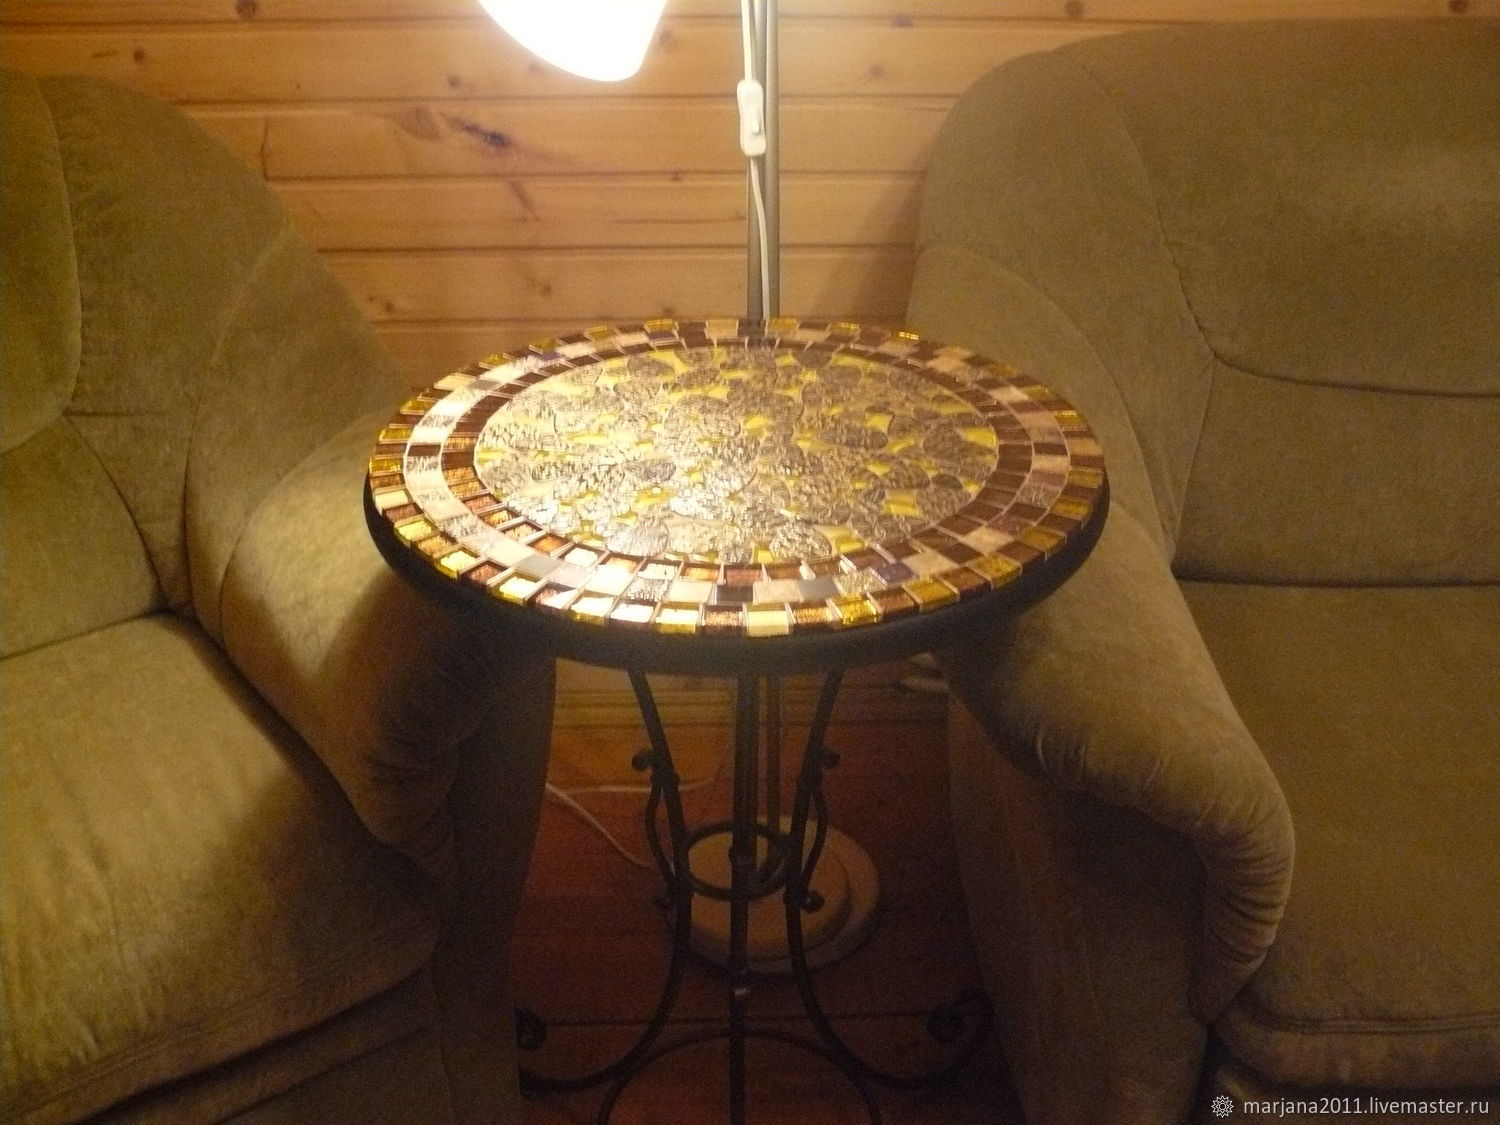 Wrought iron table with mosaic 'And on stones trees grow', Tables, Moscow,  Фото №1